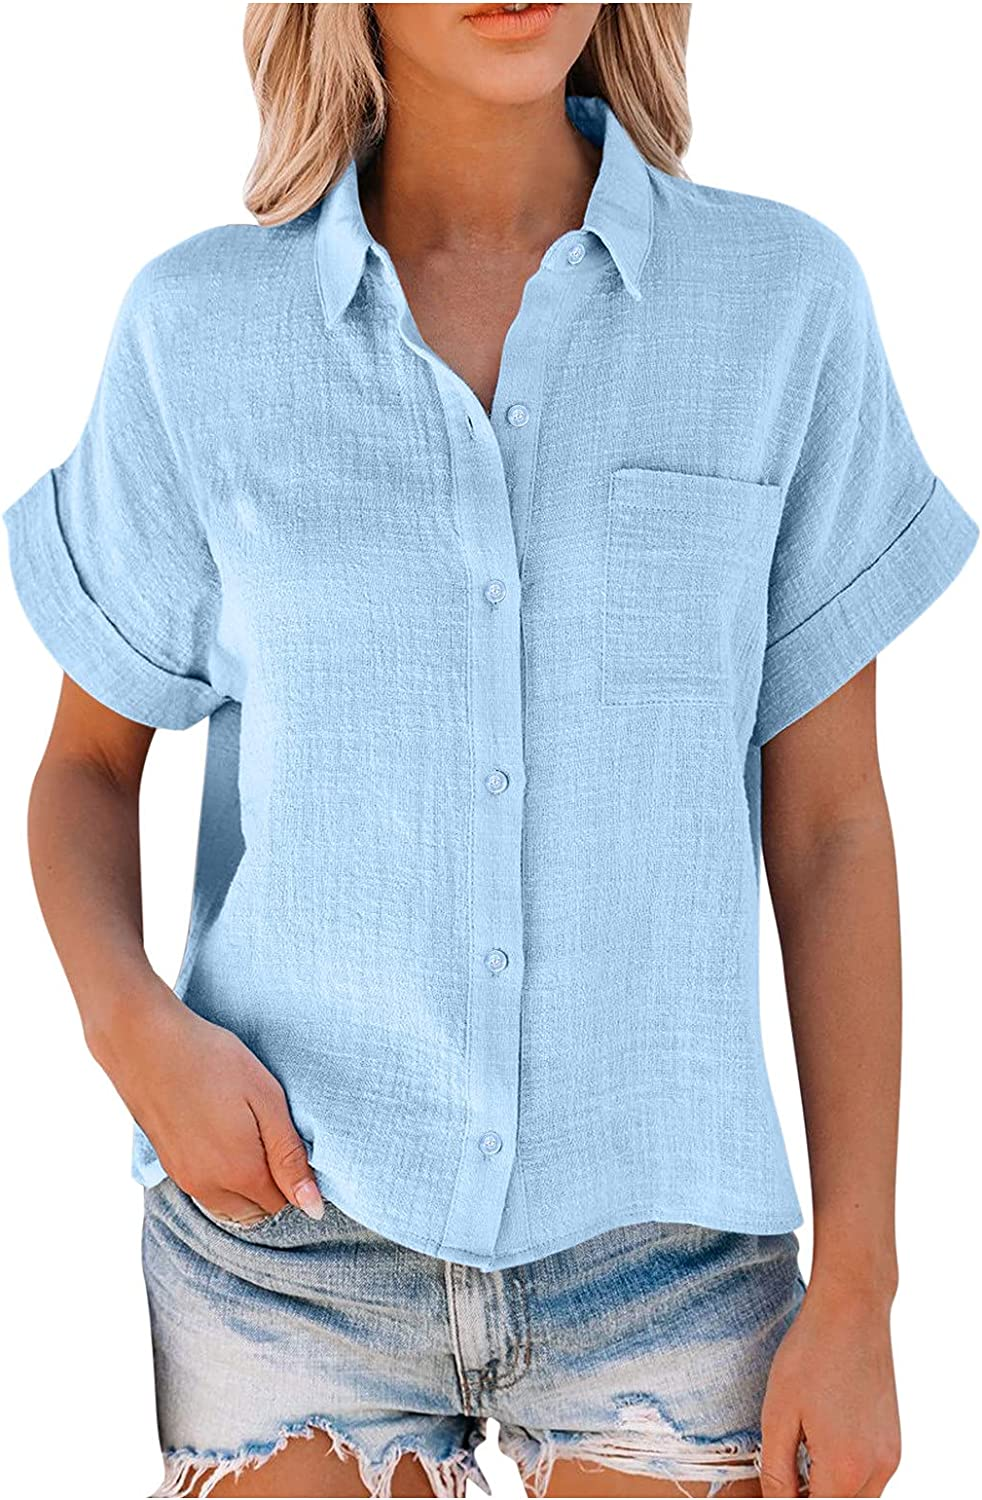 Womens Blouses Summer Casual Shirts Button Down Split V Neckline Short Sleeve Loose Tunic Tops